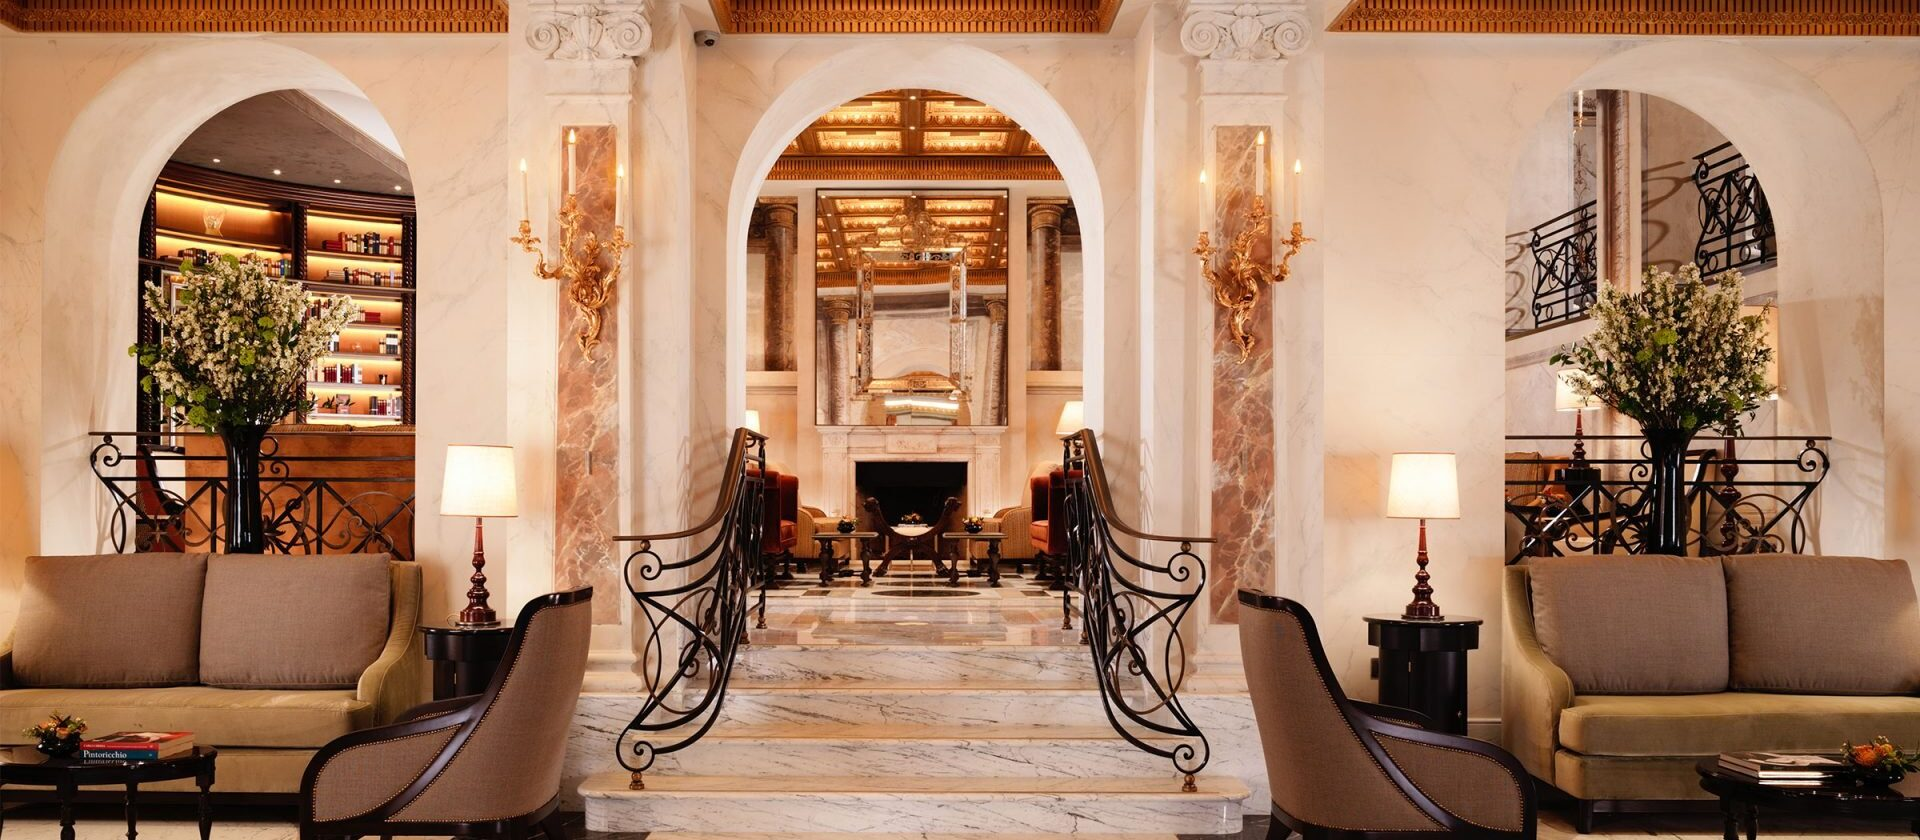 Hotel Eden Luxury 5 Star Hotel In Rome Dorchester Collection